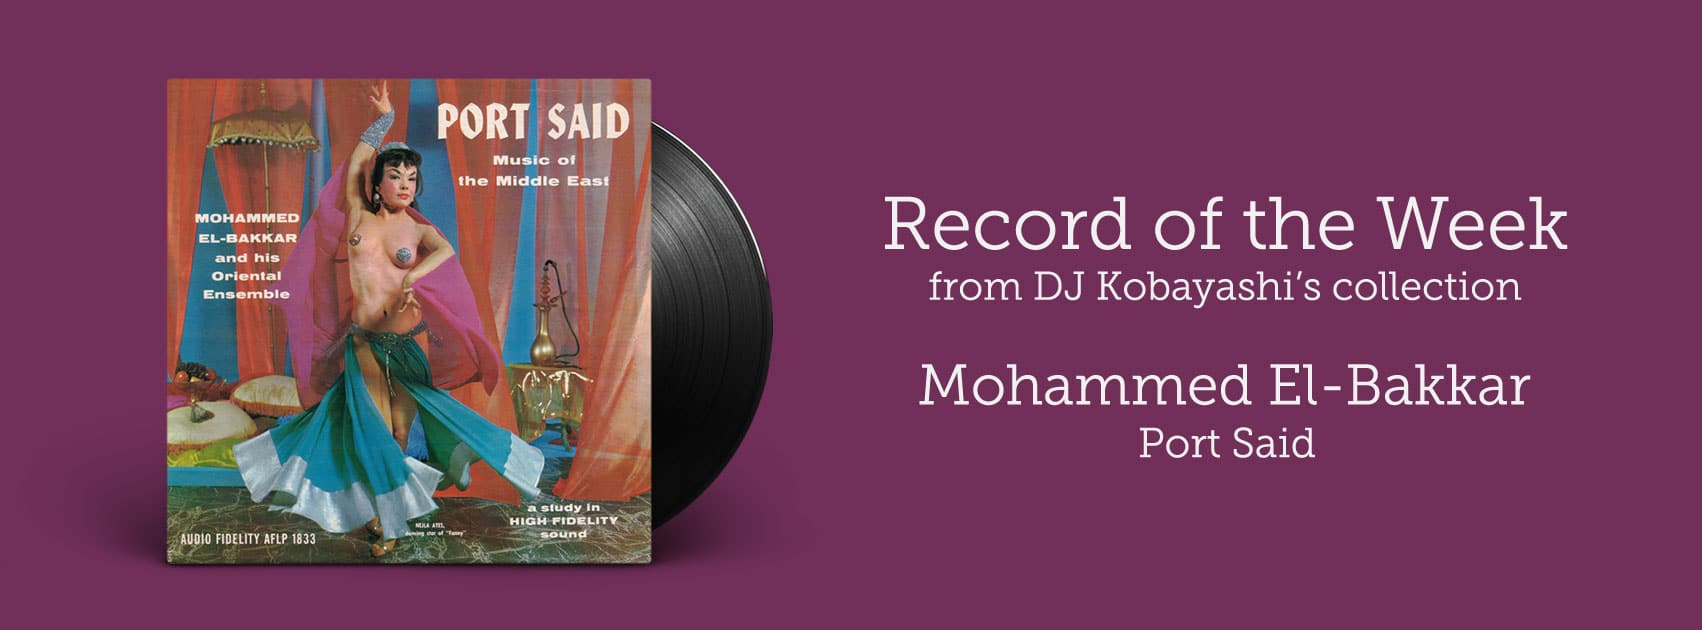 mohammed-el-bakkar - port said - Music from the Middle East